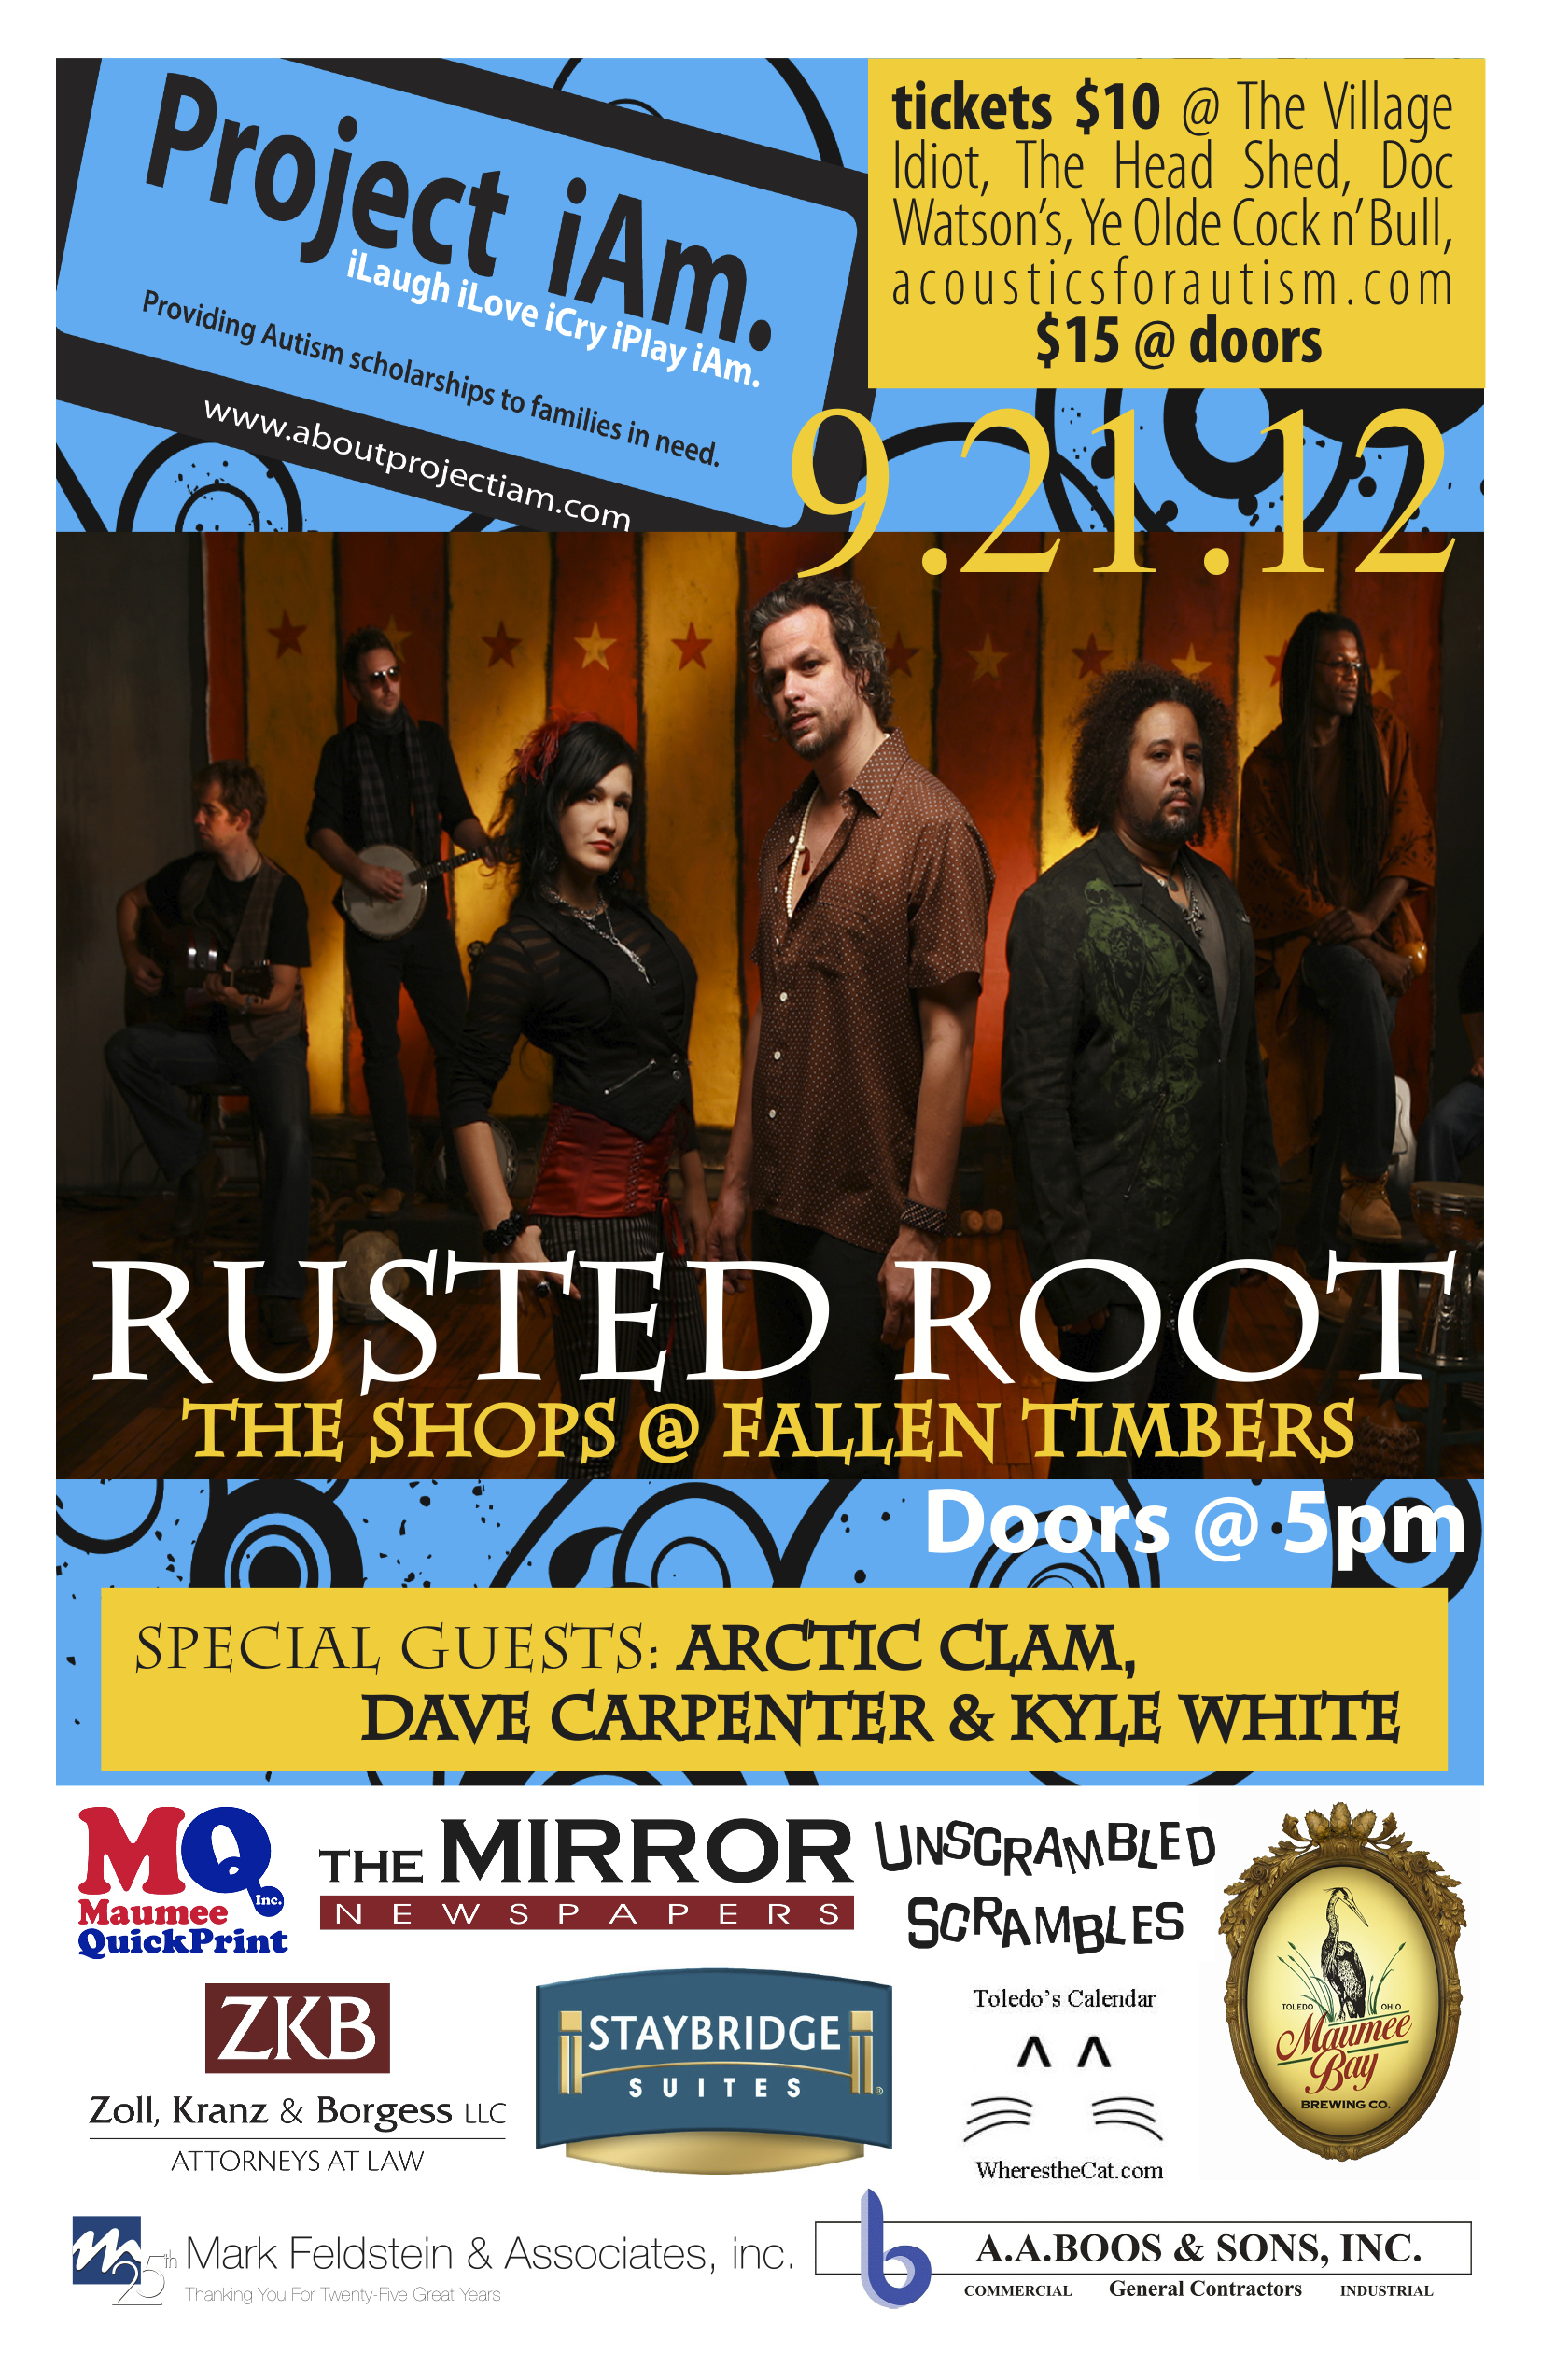 RR-poster-11x17-2012